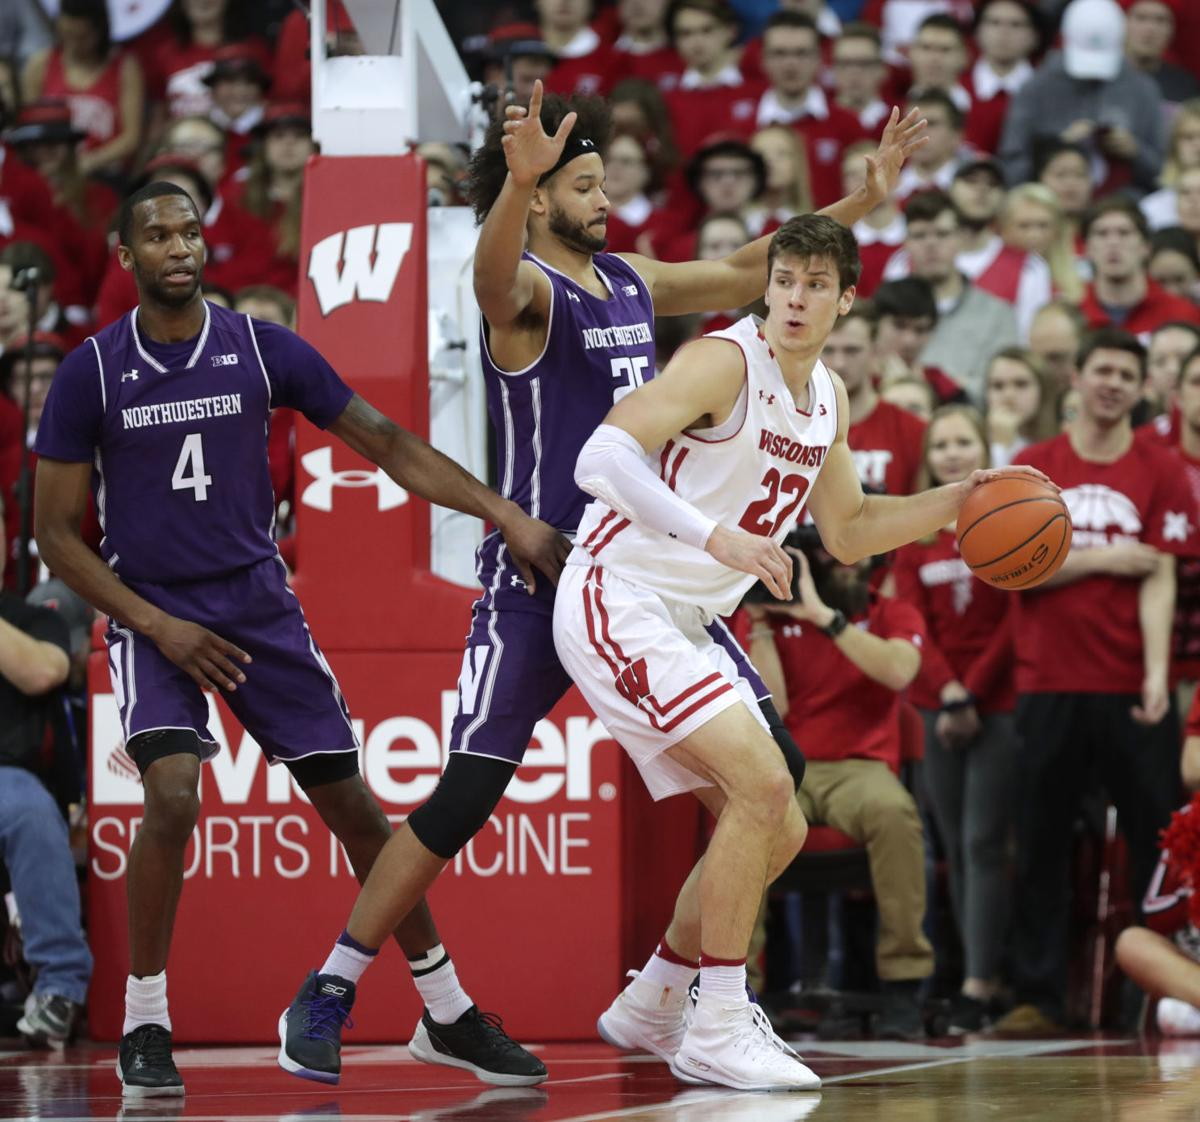 UW vs. Northwestern